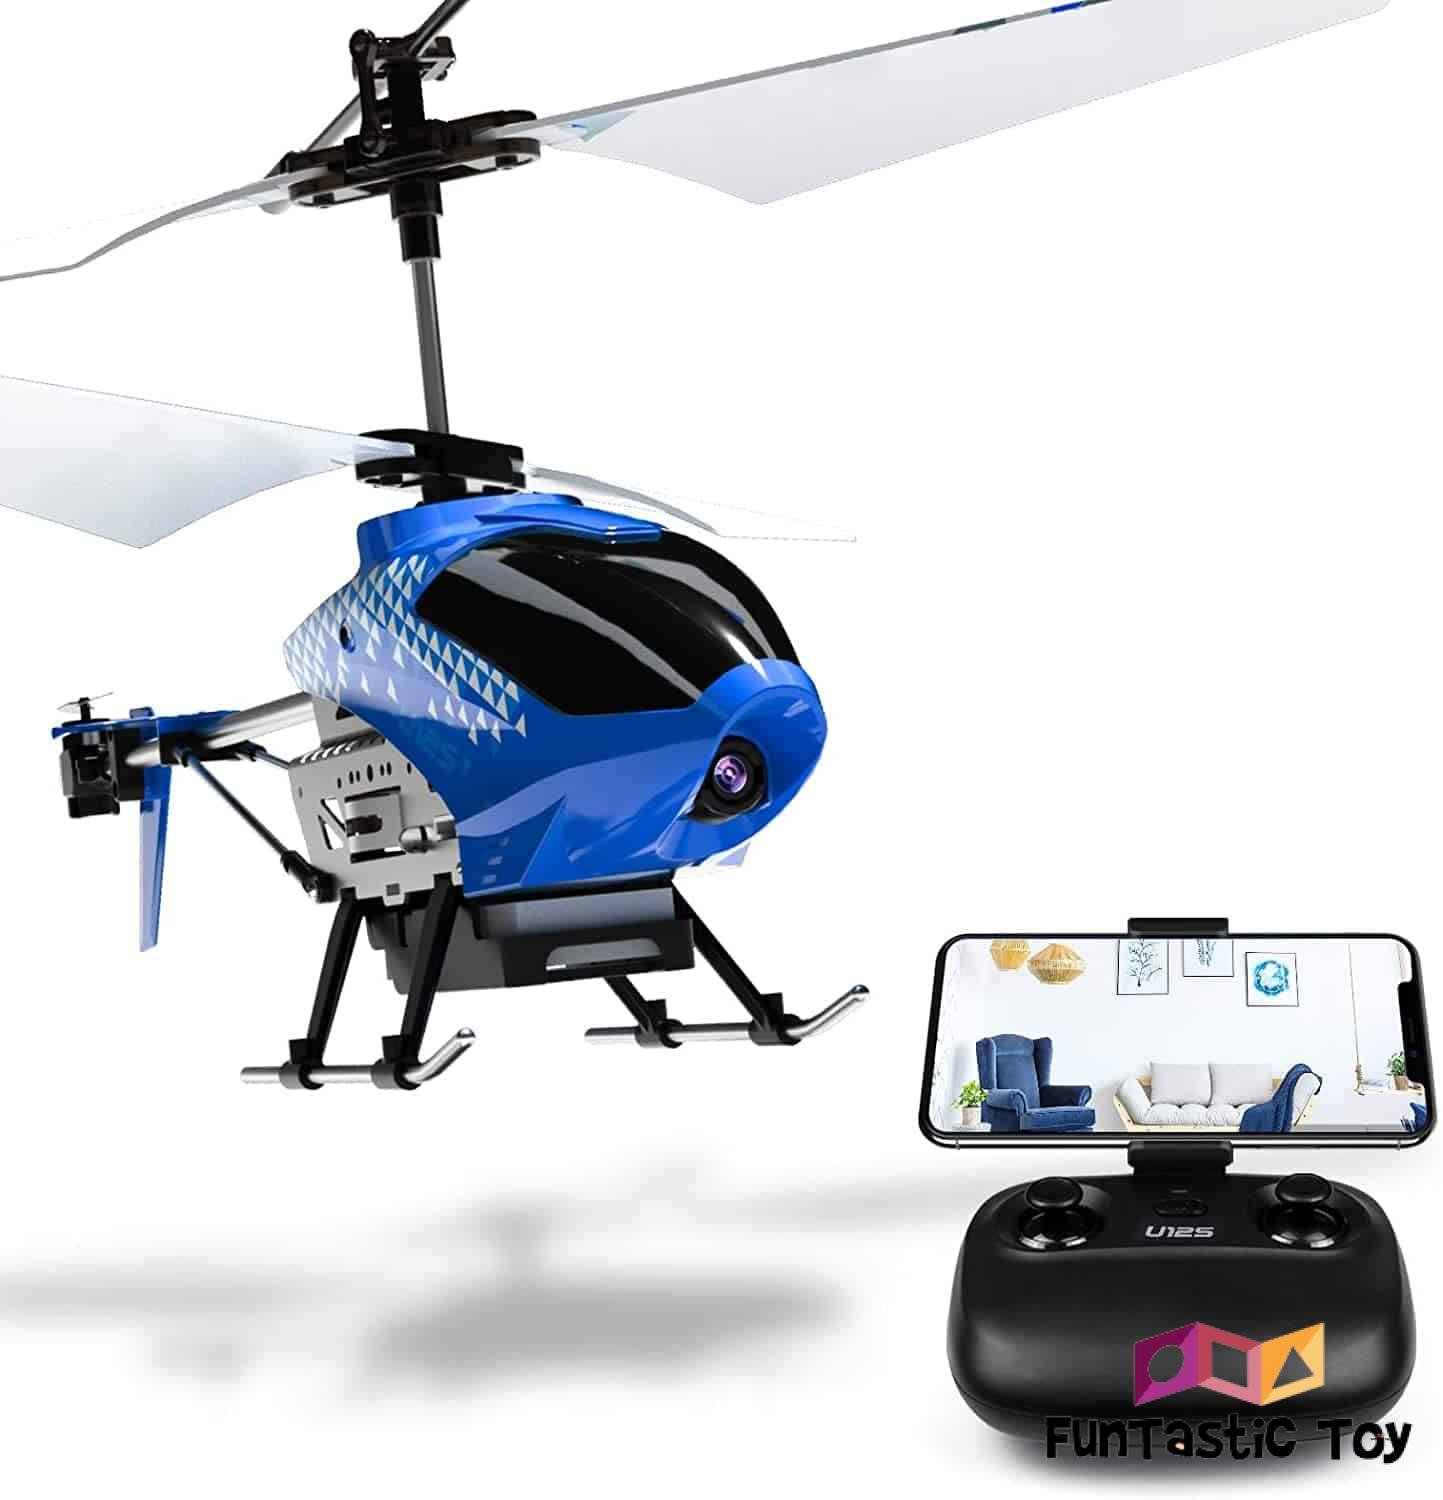 Product image of ROTOBAND Remote Control Helicopter